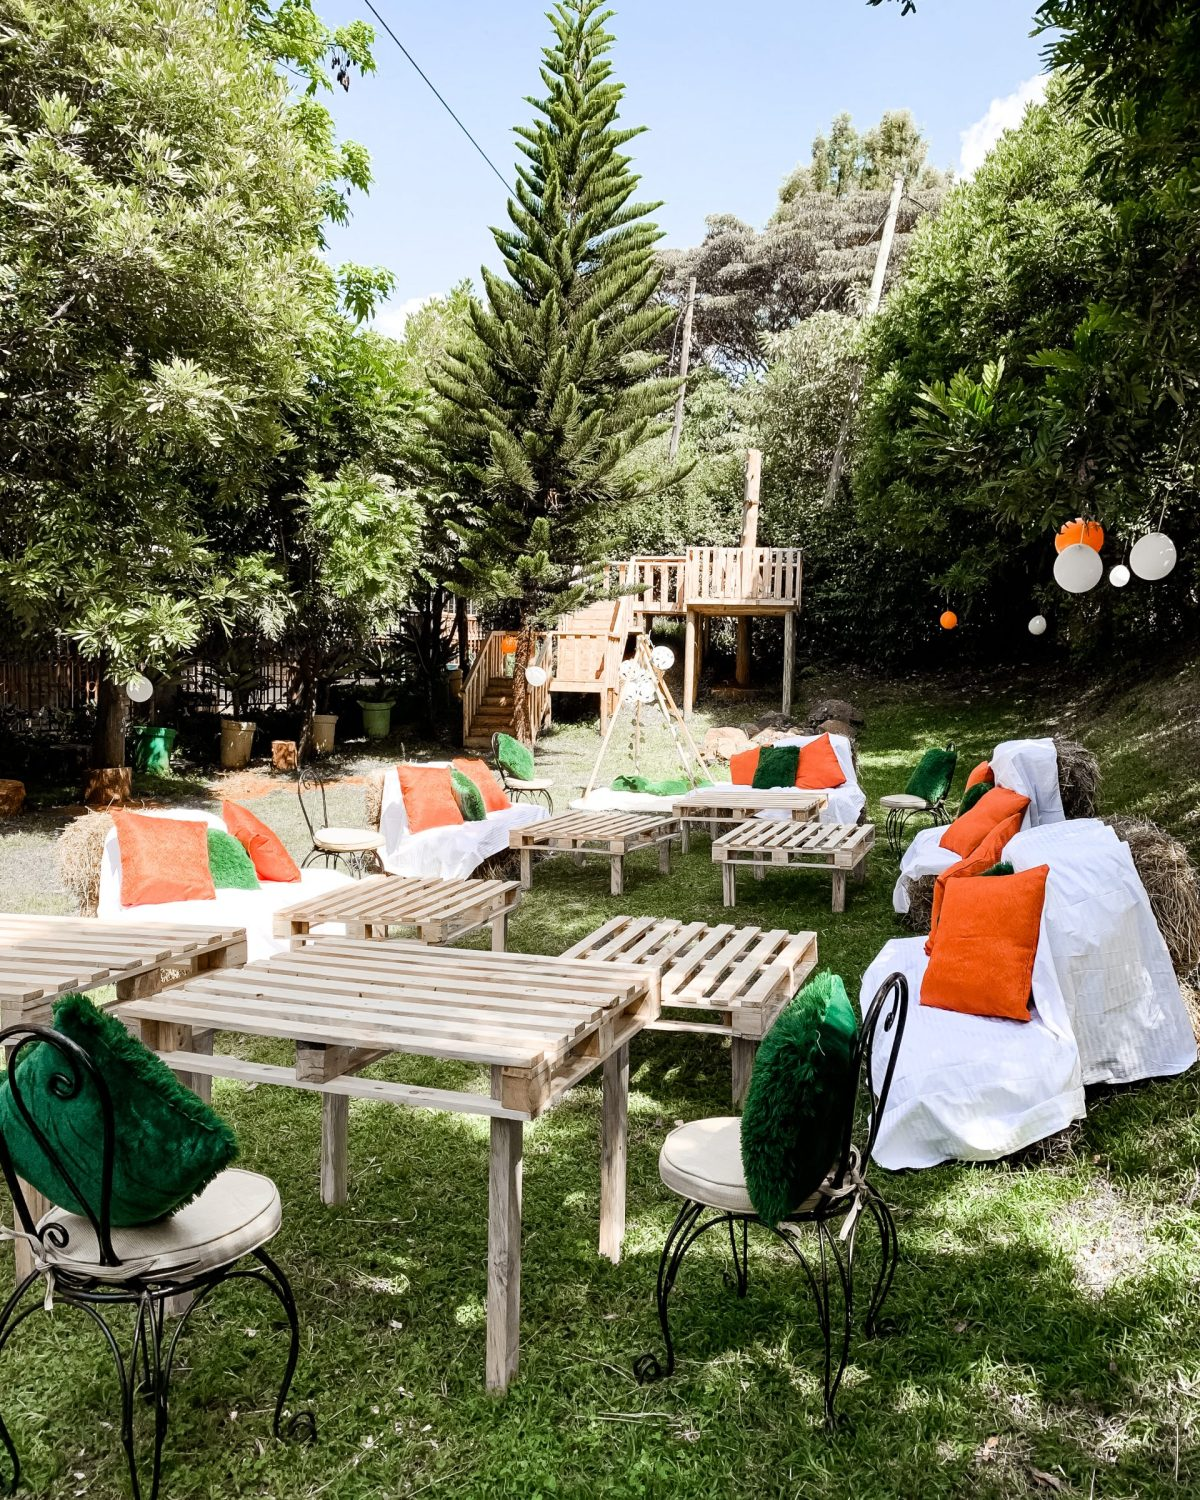 Picnic seit up with wooden pallet furniture and orange and green pillows - baby birhtday party ideas